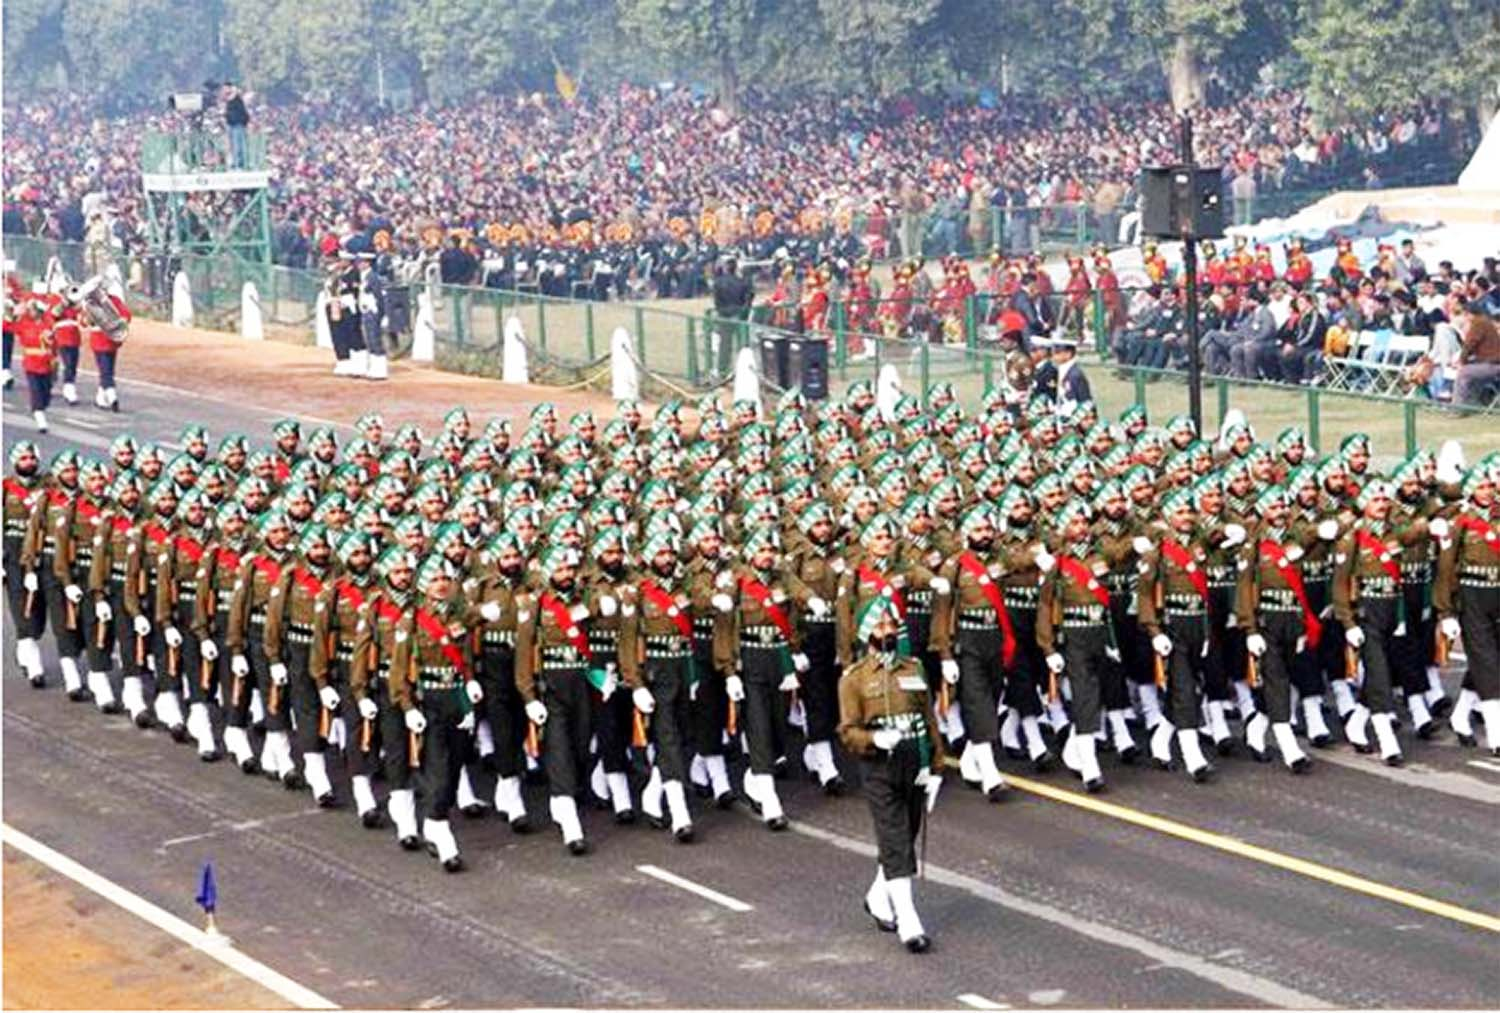 Army parade in national capital celebrating republic day